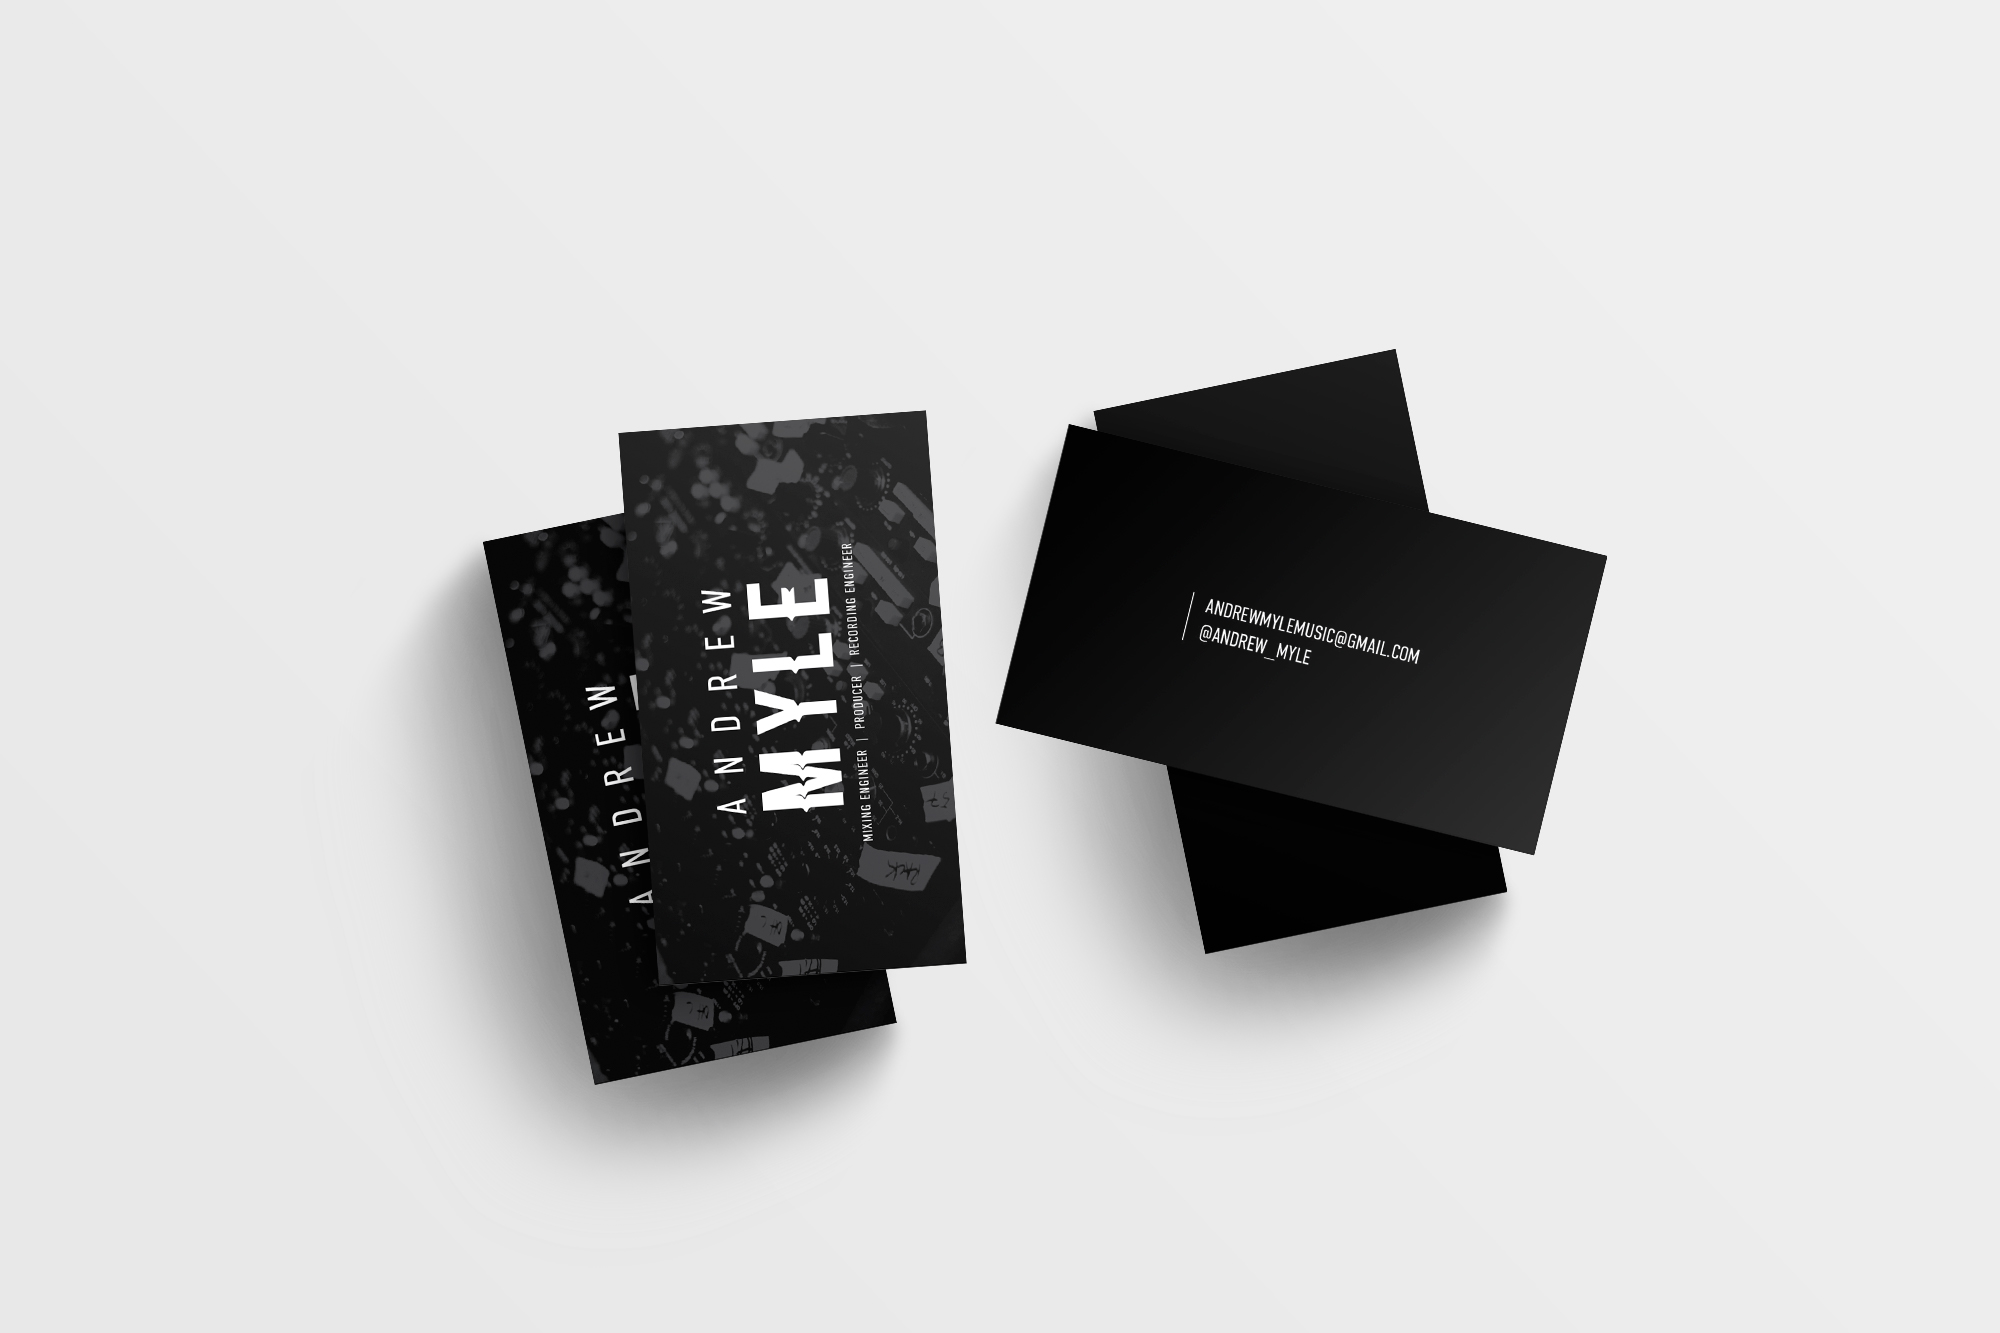 Andrew Myle Business Cards_Mockup2.jpg